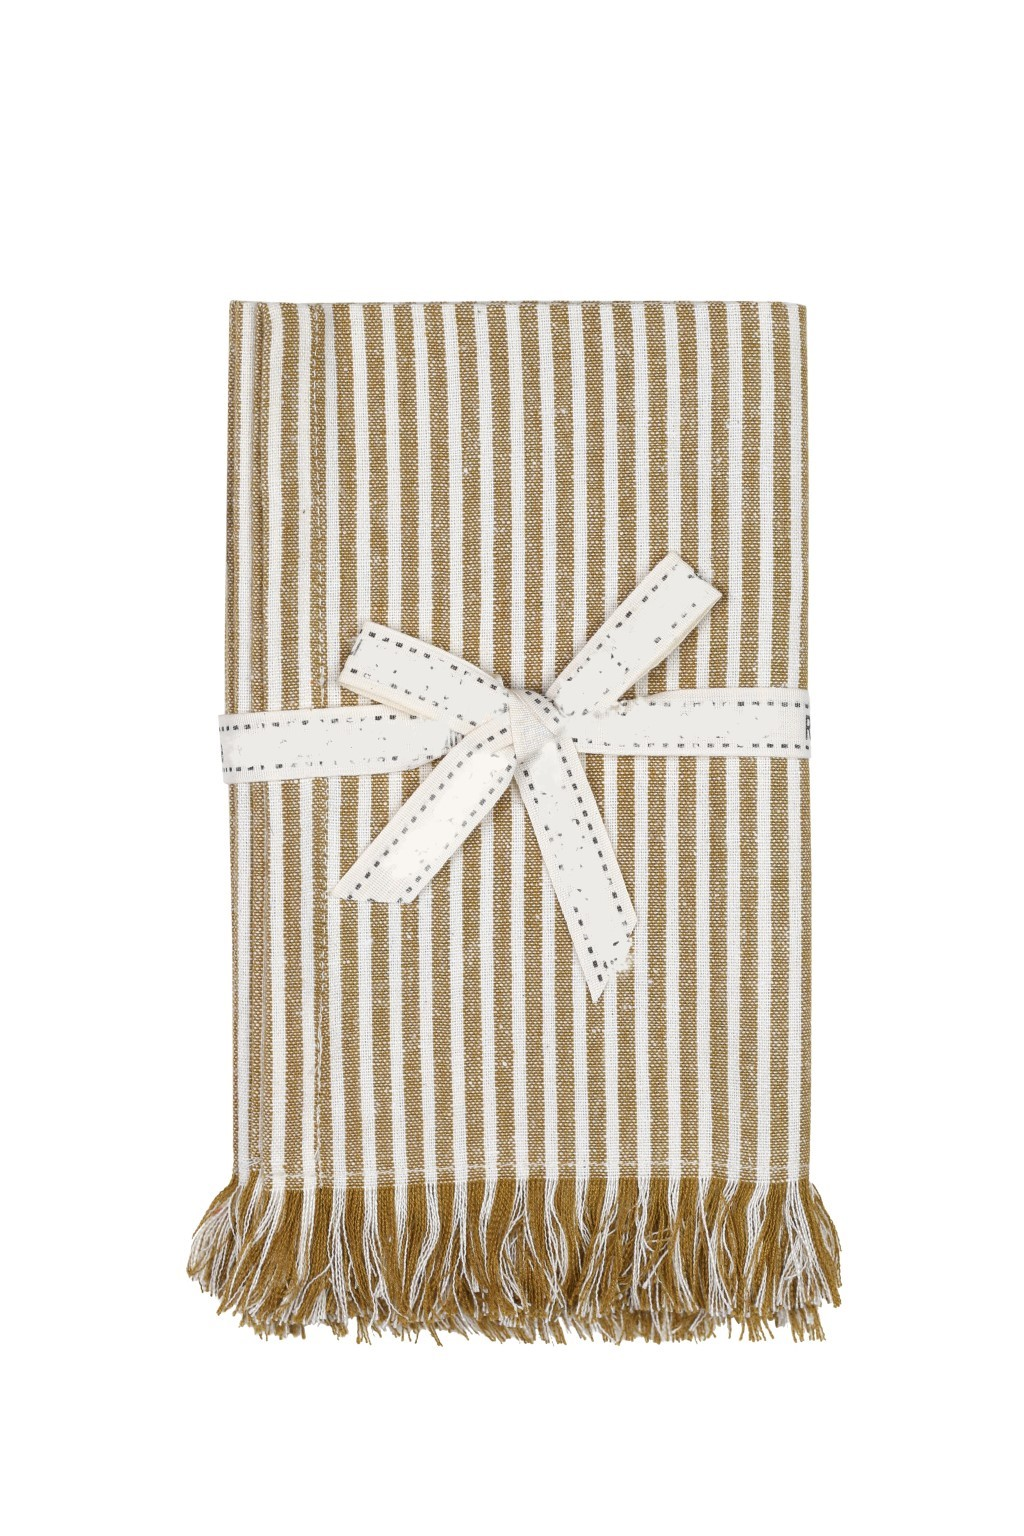 Set of Eight Yellow Ochre Striped Placemats